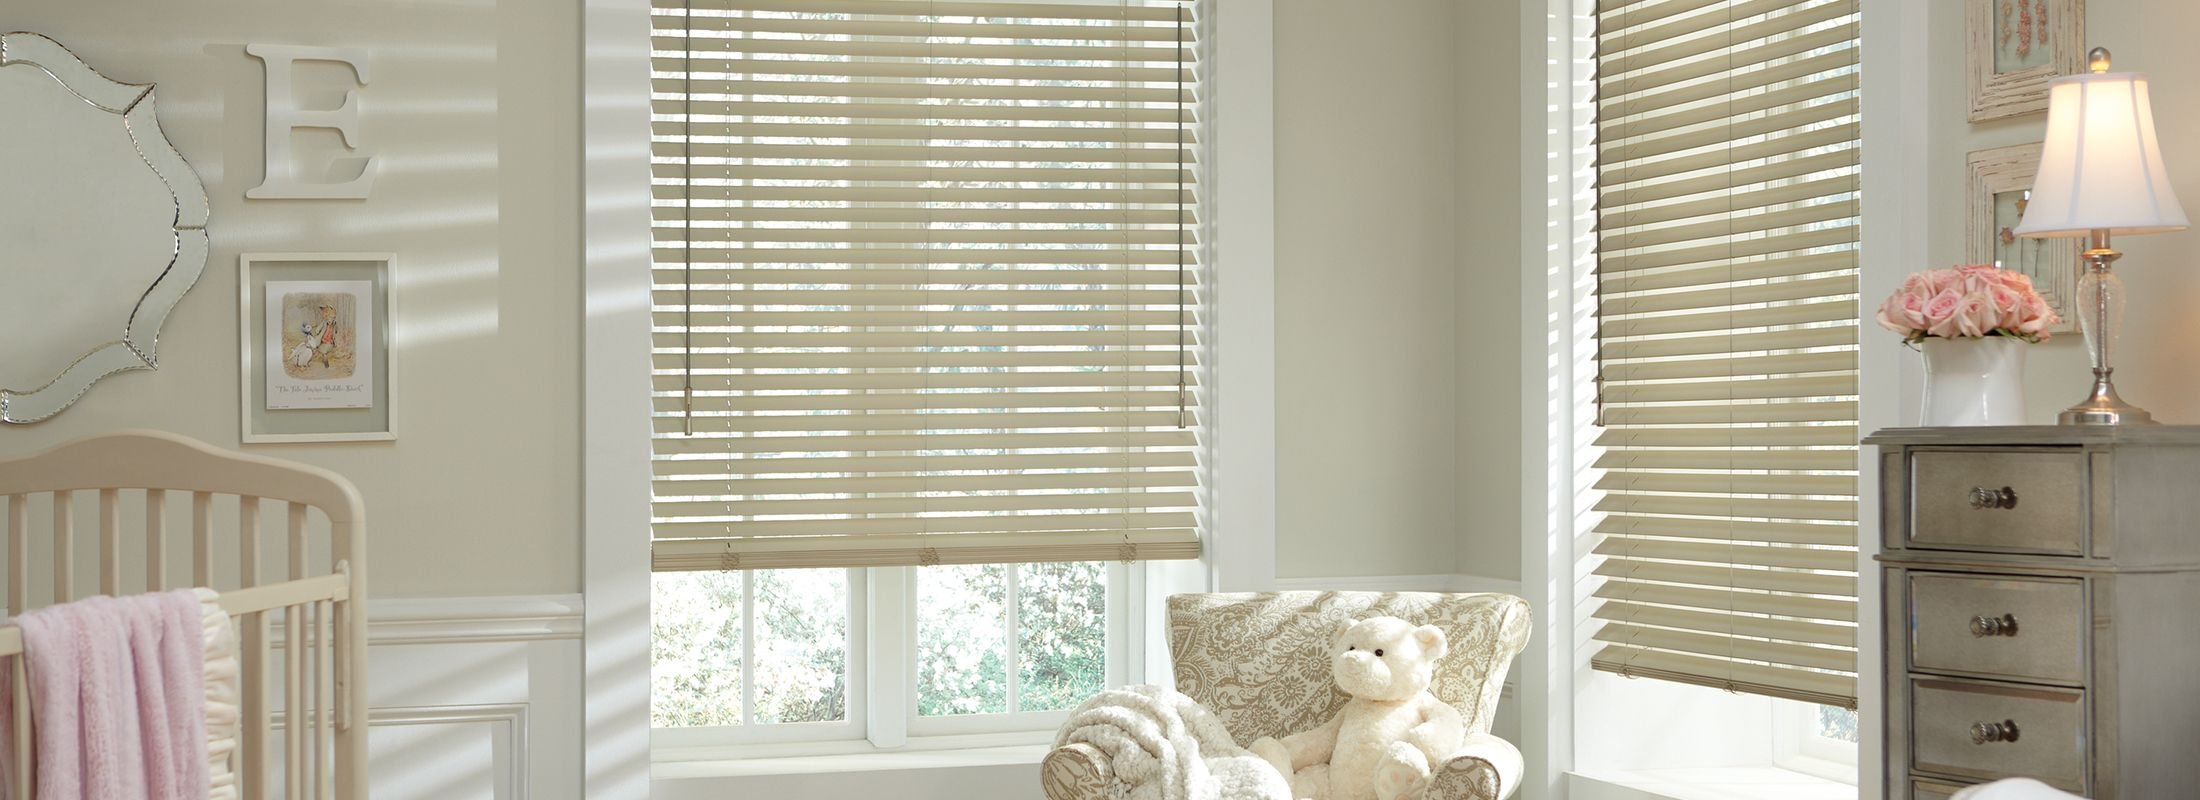 window everwood in carousel coastal faux blinds hunter wood deco treatments metal douglas gray douglass trugrain